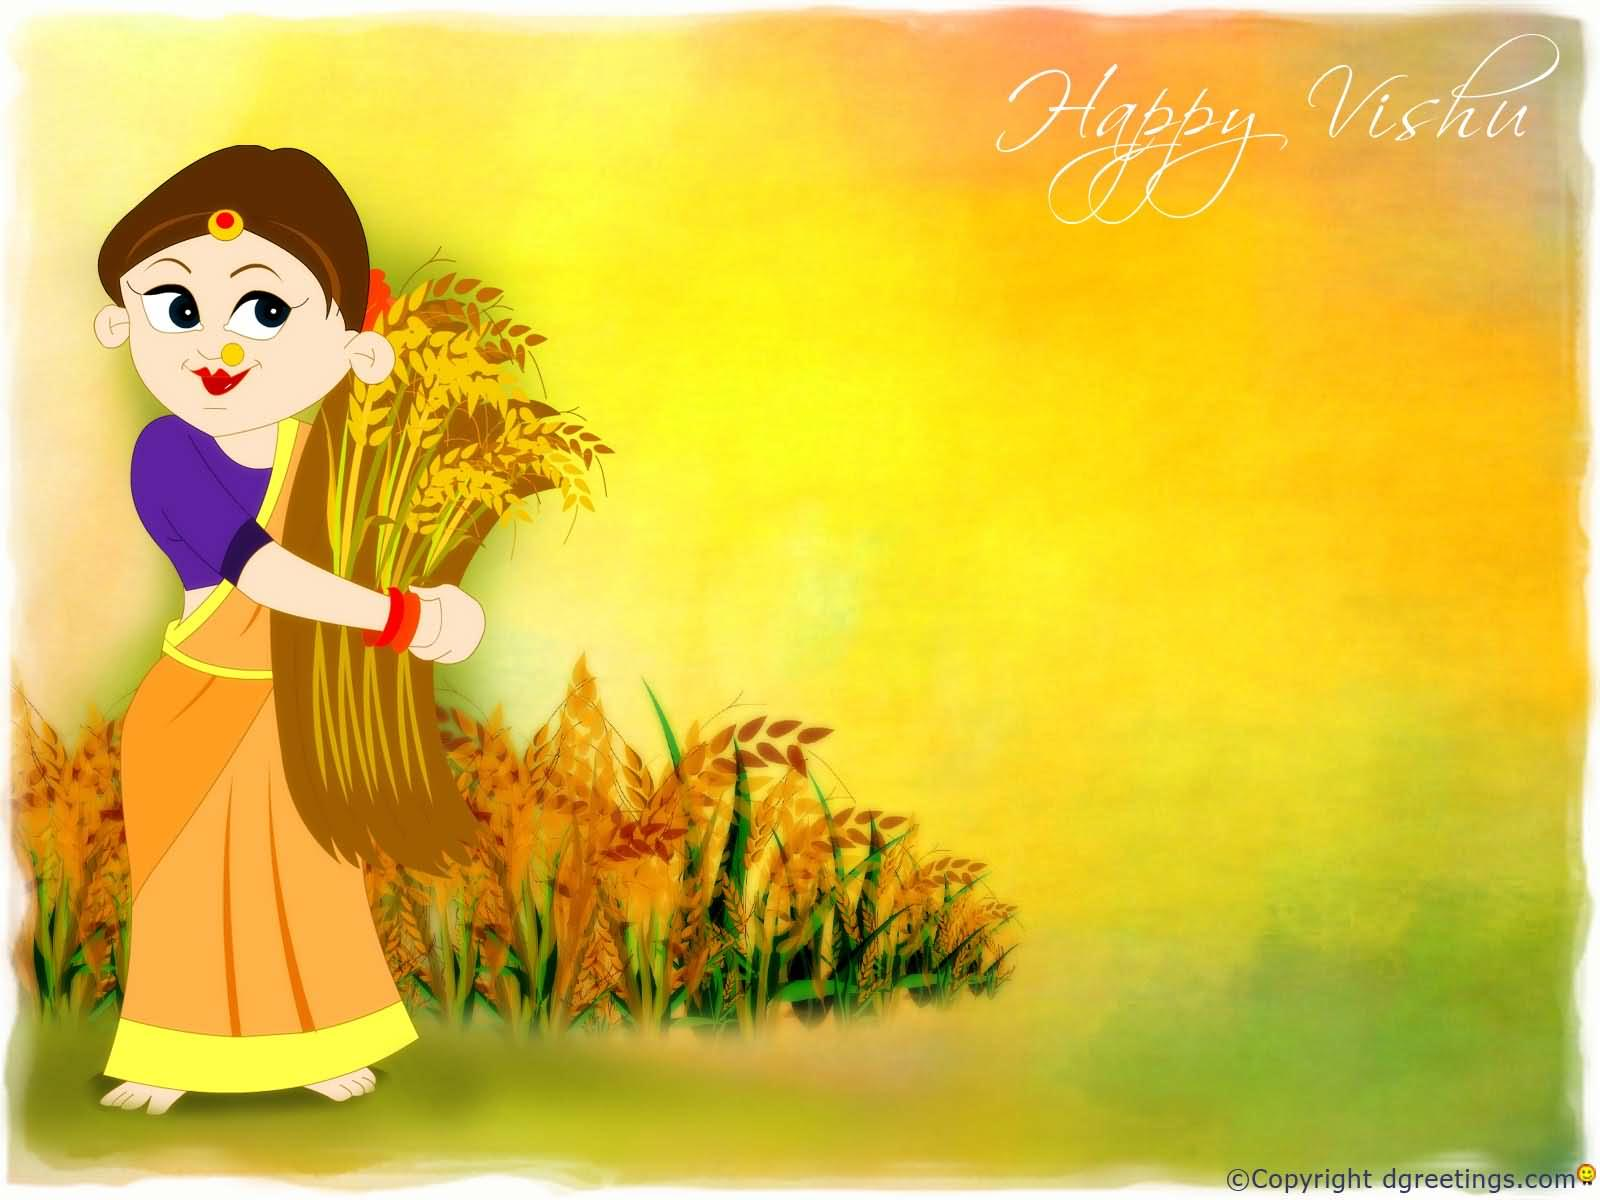 35 Very Beautiful Vishu Greeting Pictures And Photos